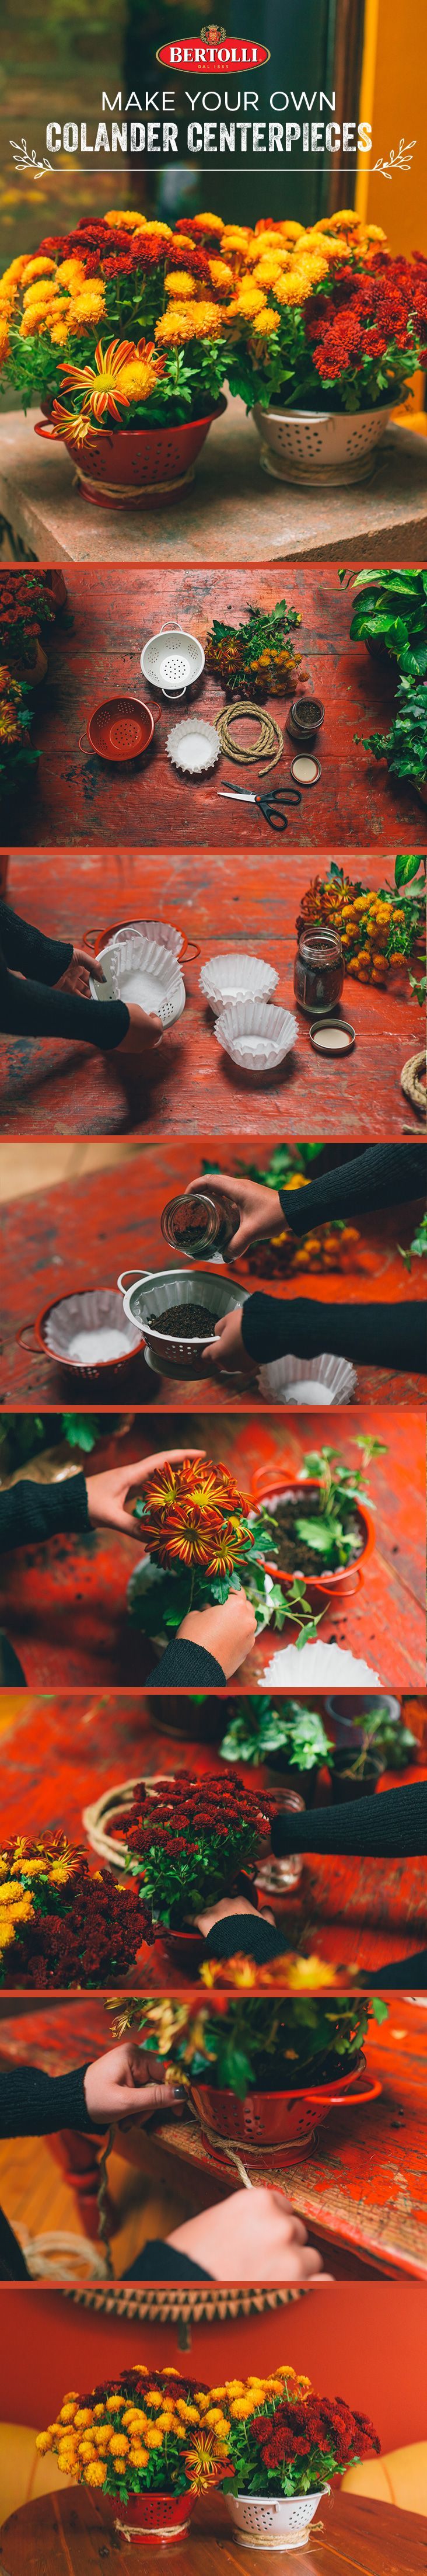 Hanging Herb Garden Kit Part - 39: That Colander You Use To Drain Spaghetti Also Makes A Unique Planter For A  Kitchen Herb Garden. Keep It On Your Countertop Or Use A Flowerpot Hanging  Kit To ...